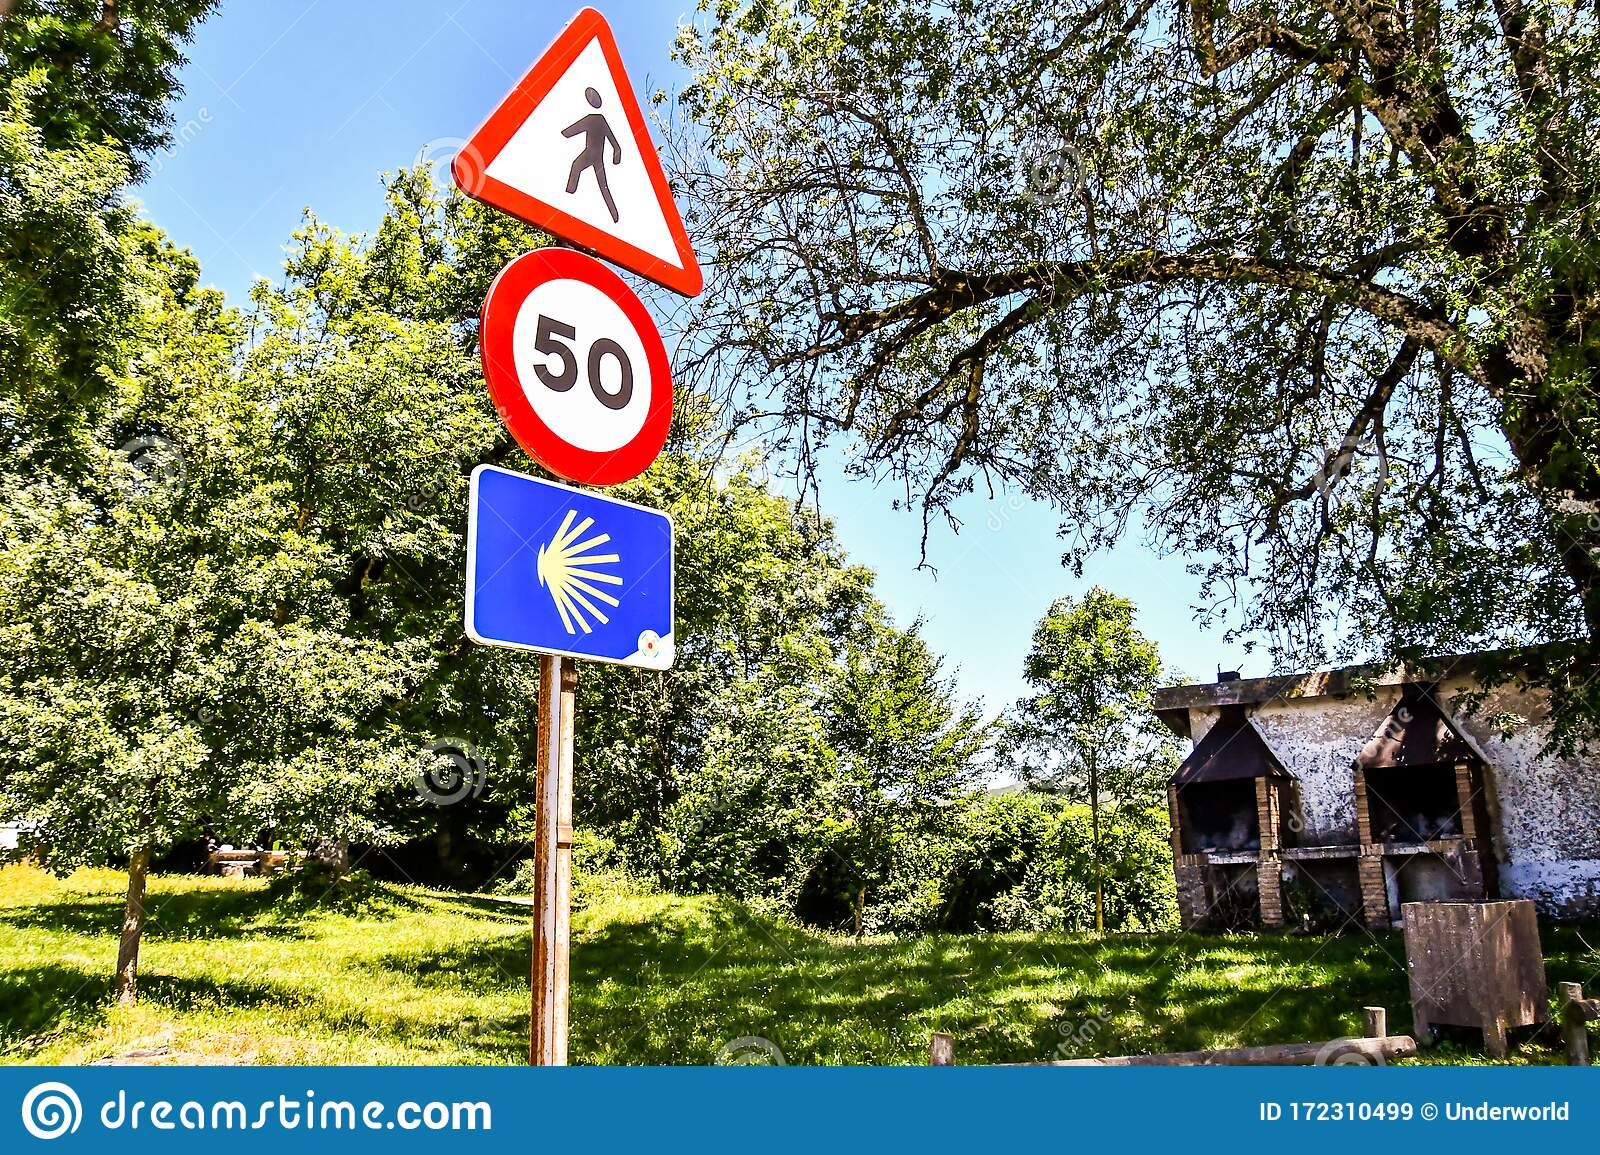 Road Sign In Mountains Camino De Santiago Walk From France To Santiago De Compostela Galicia Spain In Navarra Aragon Zaragoza Stock Image Image Of Traffic Zaragoza 172310499